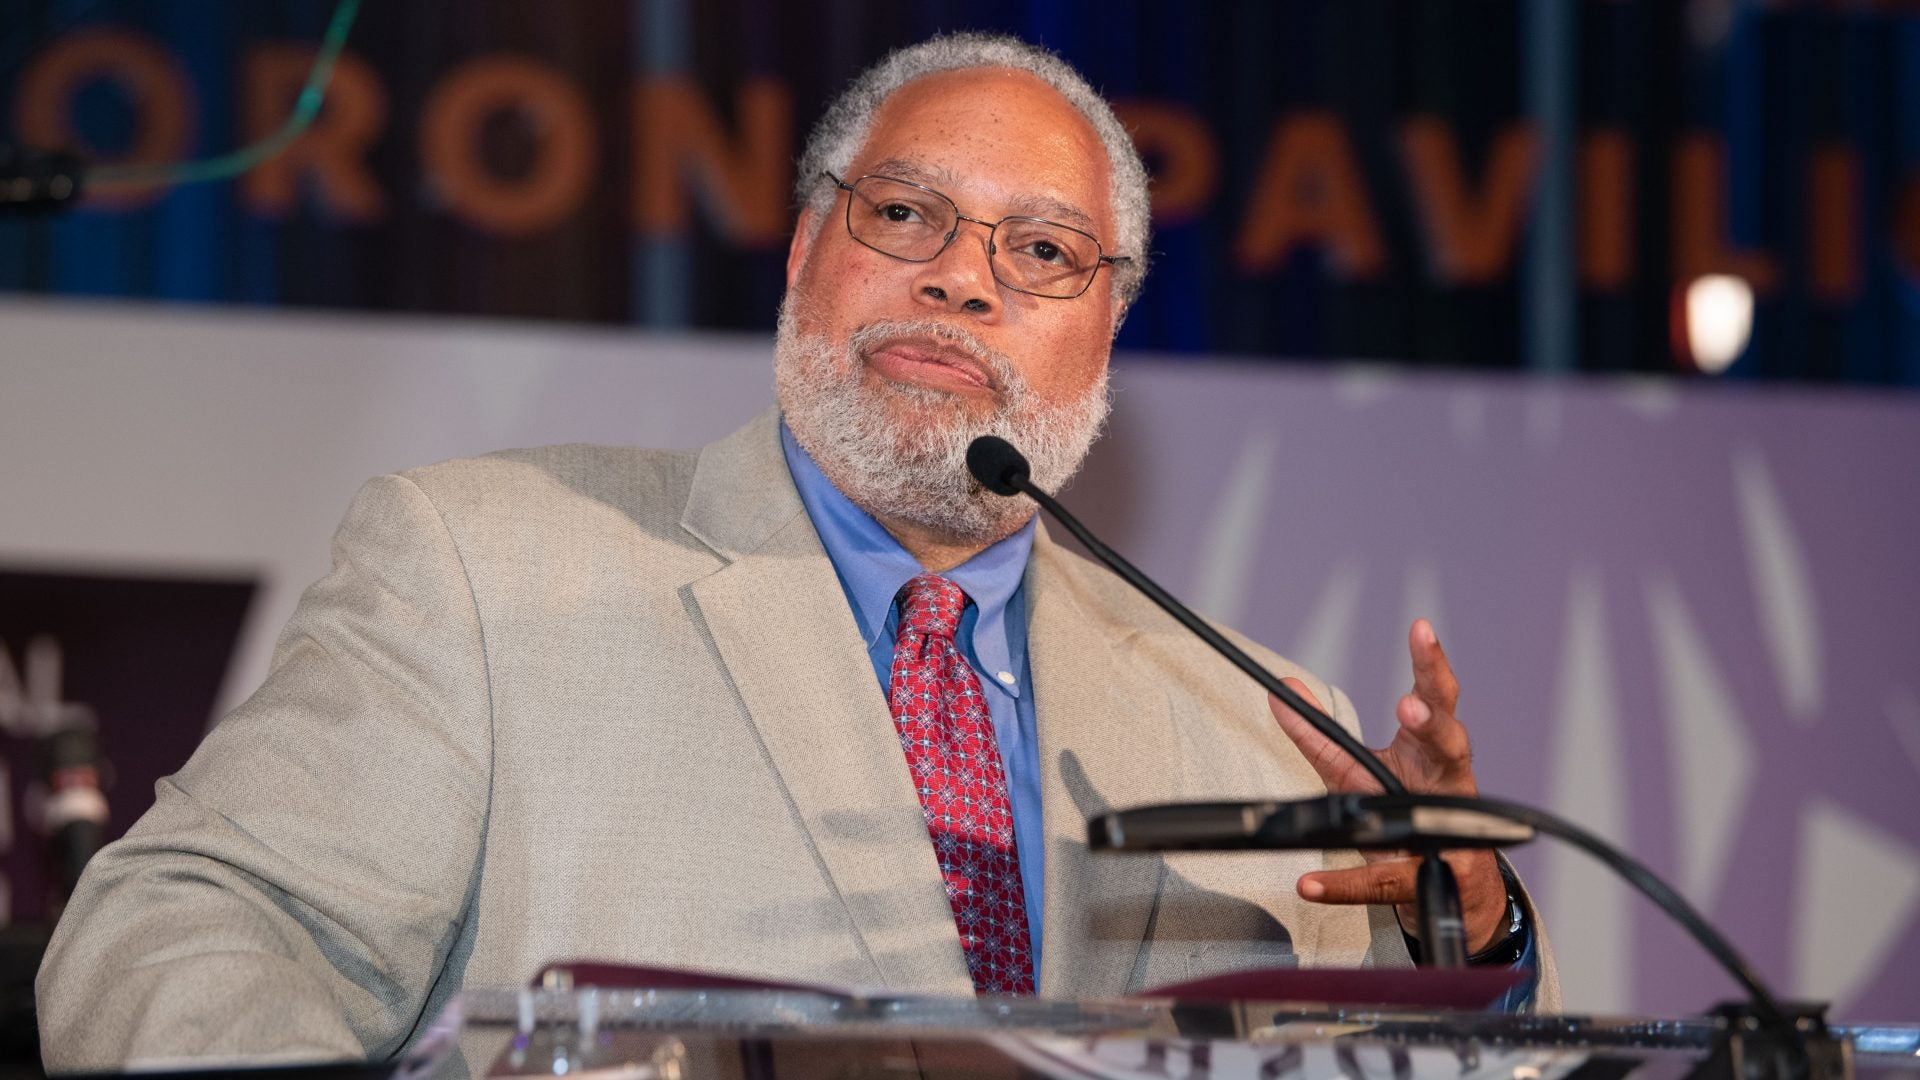 Lonnie Bunch III, Director of The National Museum Of African American History, Tapped To Become 1st Black Secretary Of The Smithsonian